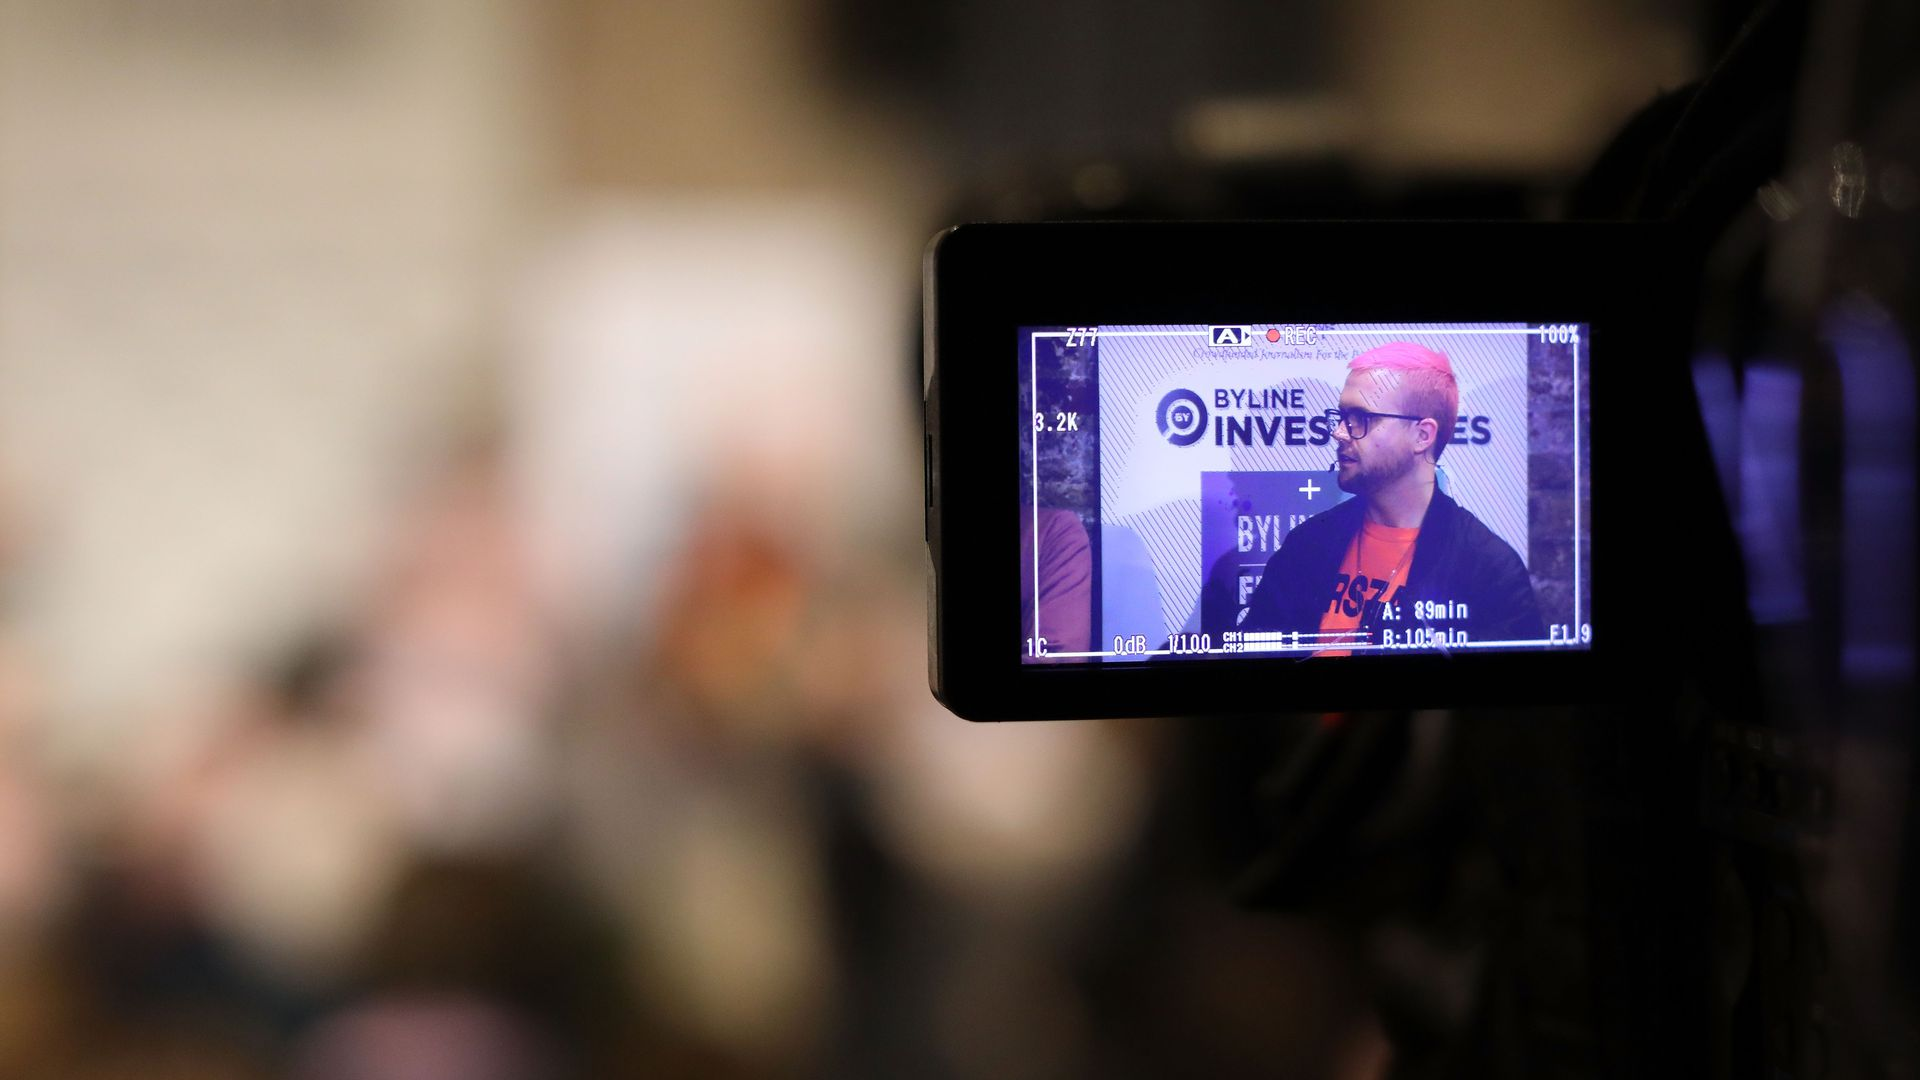 Christopher Wylie is shown on the screen of a video camera